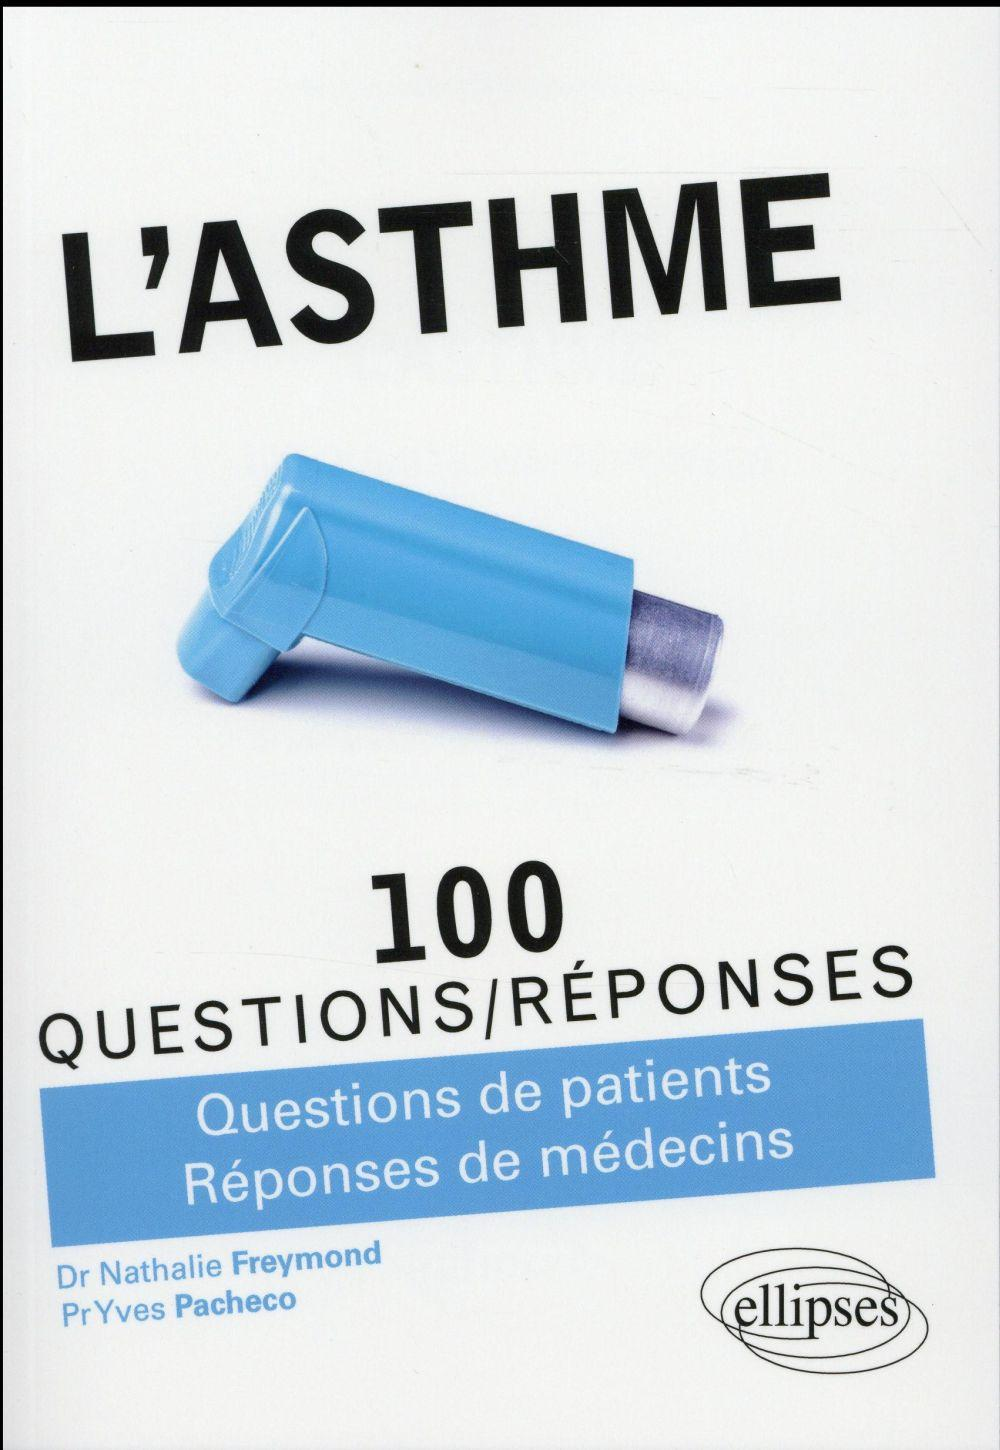 Vente Livre :                                    100 QUESTIONS/REPONSES ; l'asthme ; 100 questions/réponses ; questions de patients, réponses de médecins                                      - Nathalie Freymond  - Yves Pacheco